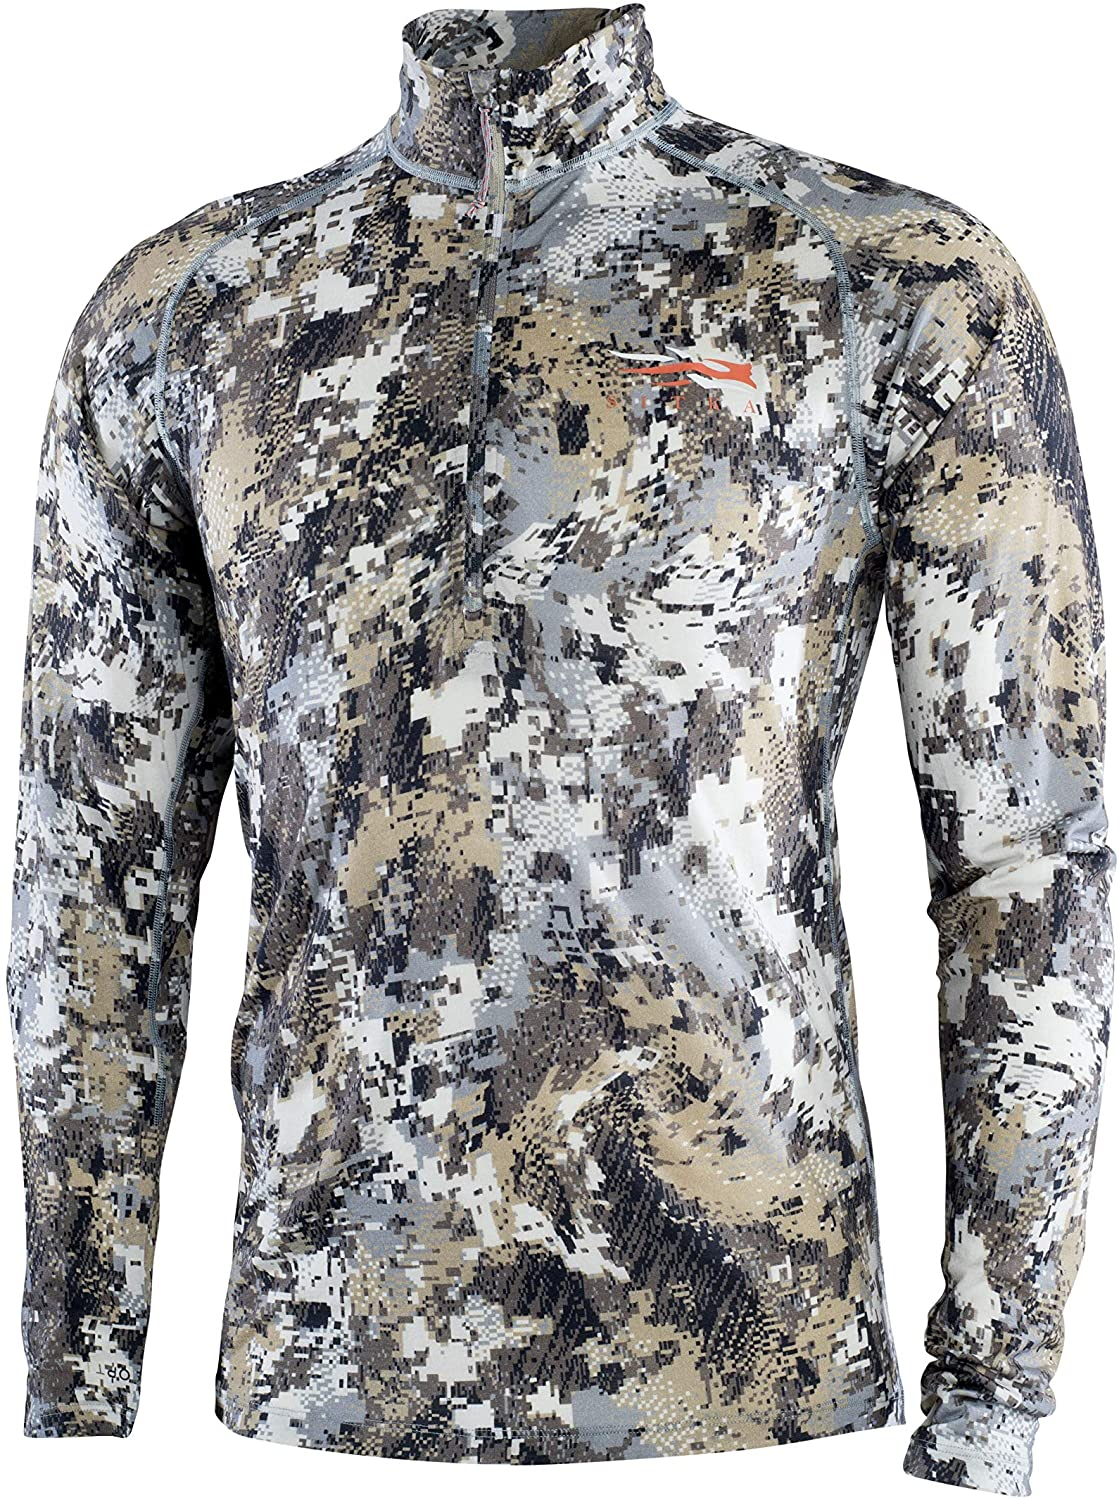 SITKA Gear Men's Merino Core Lightweight Half-Zip Odor-Free Camo Long Sleeve Hunting Shirt, Optifade Elevated II, XXX-Large